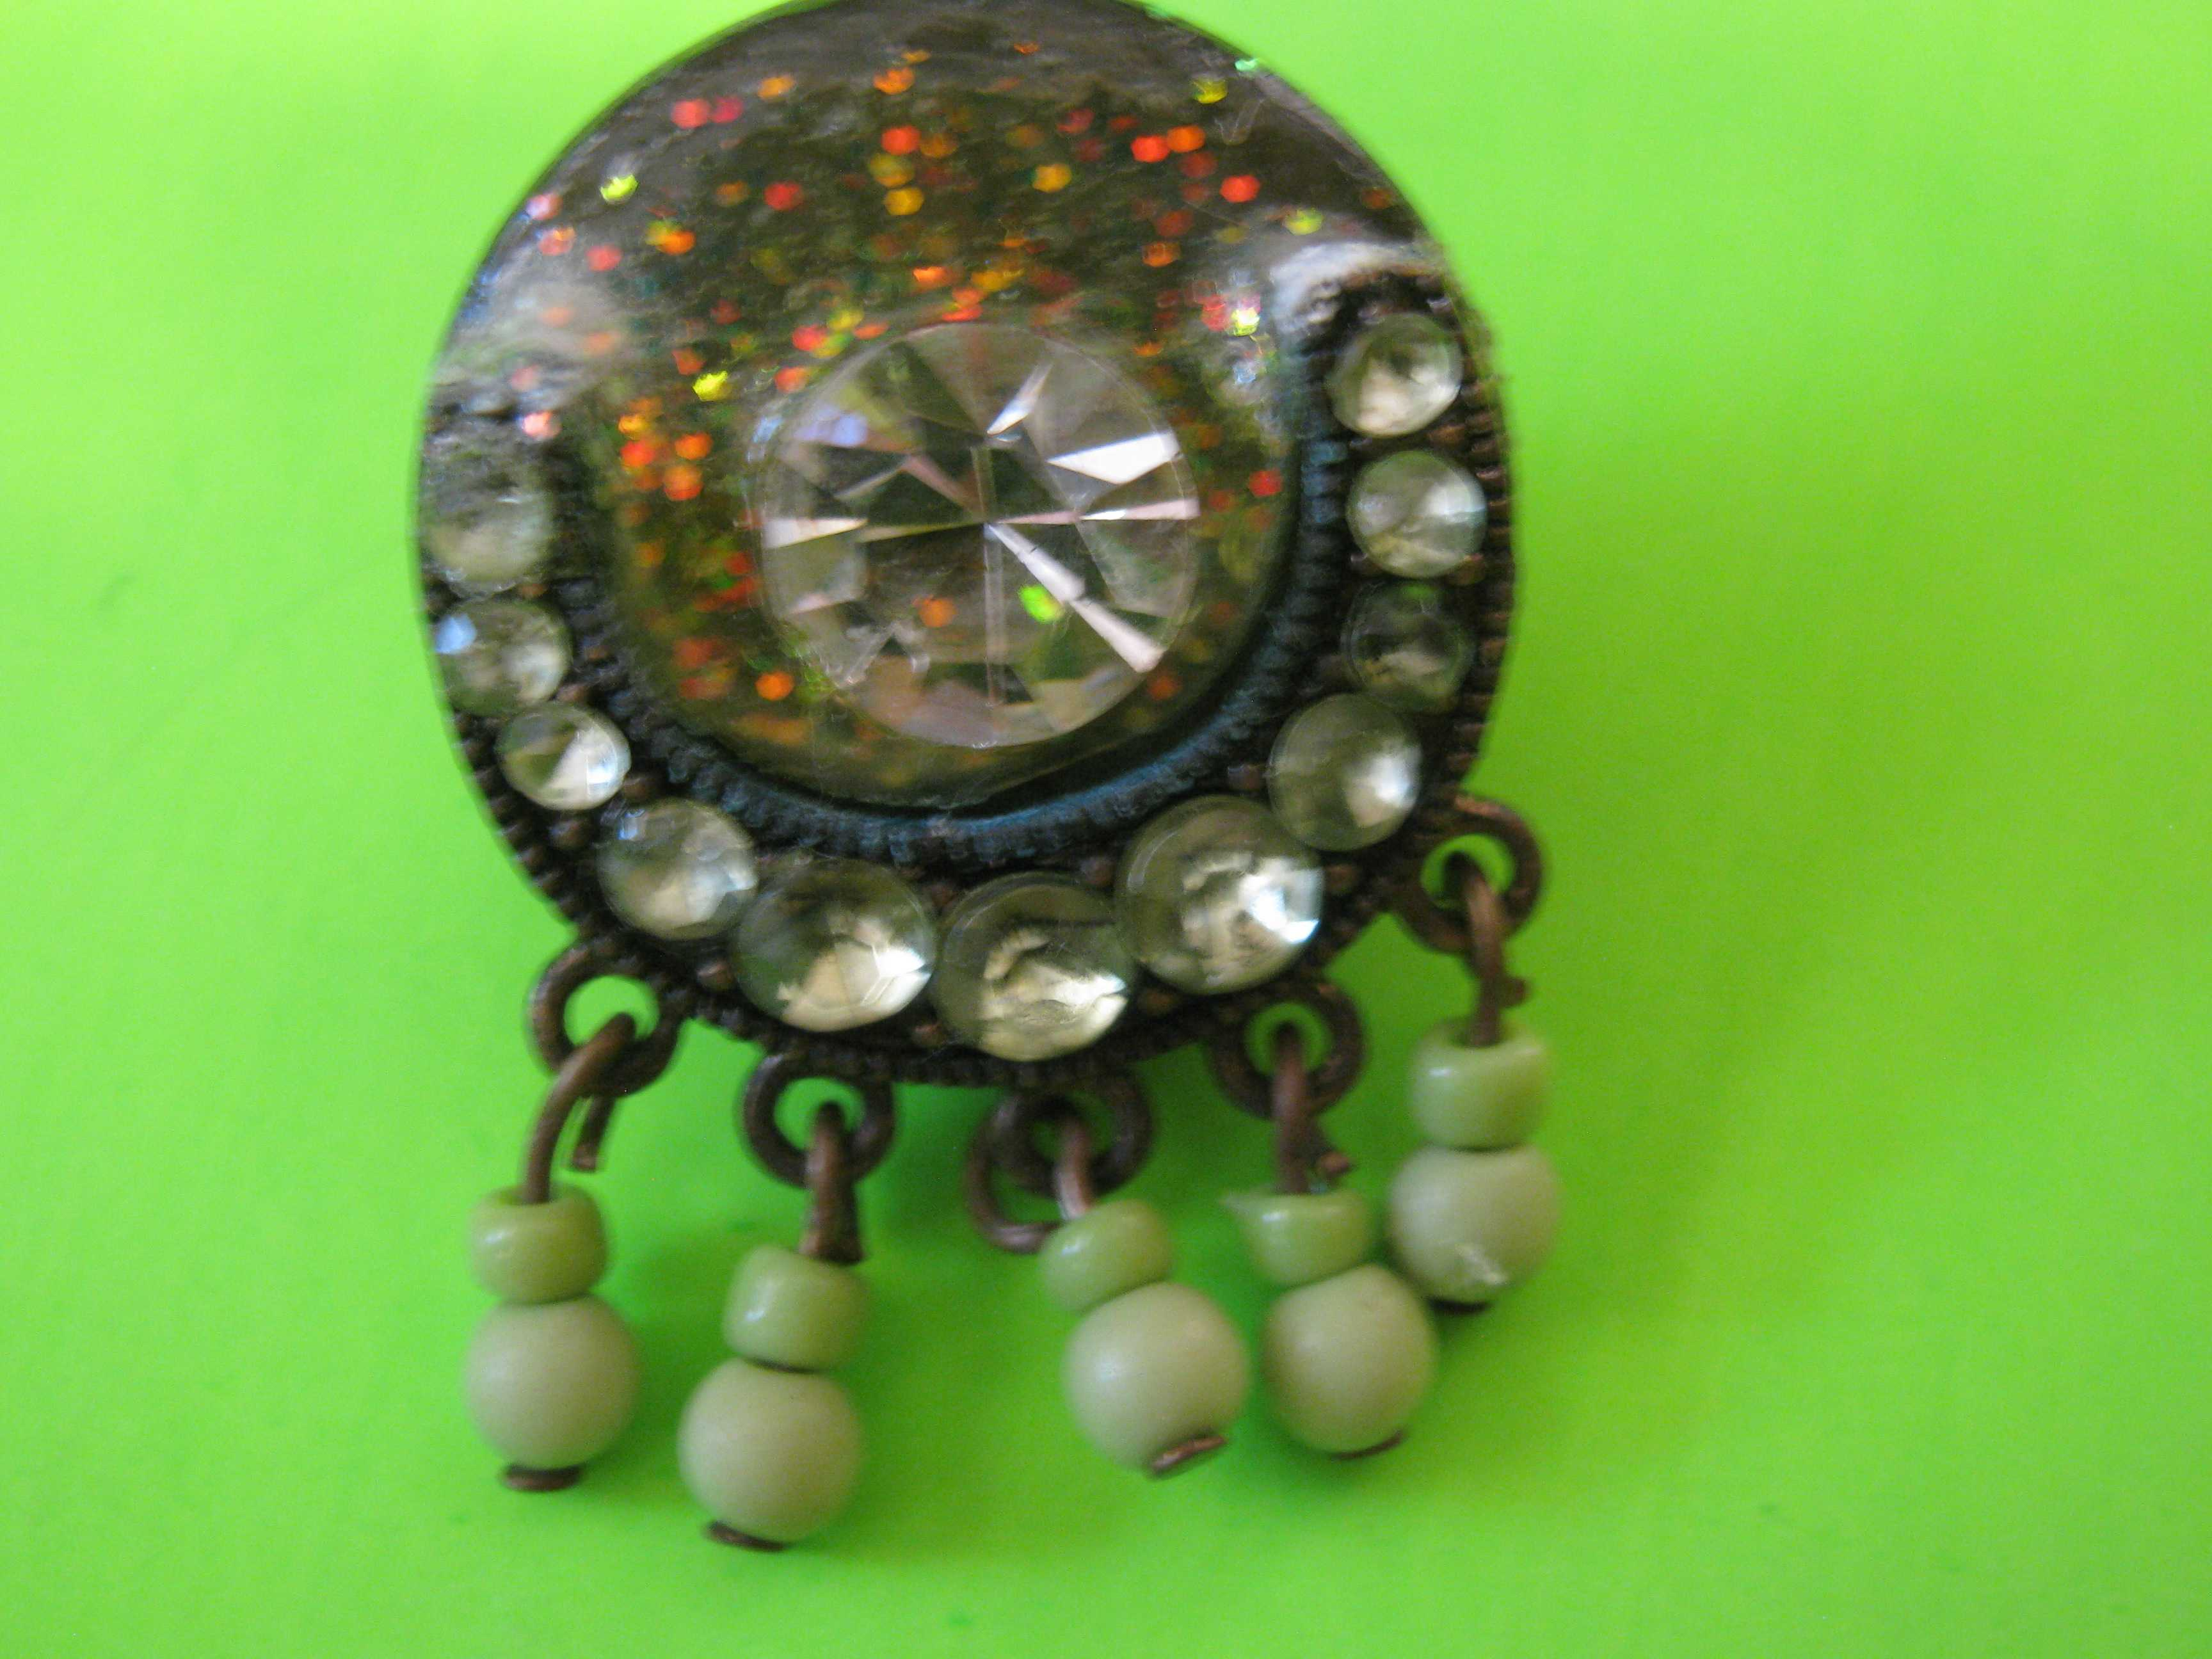 Vintage Rhinestones and Beads Button with Silver Metal Loop Shank